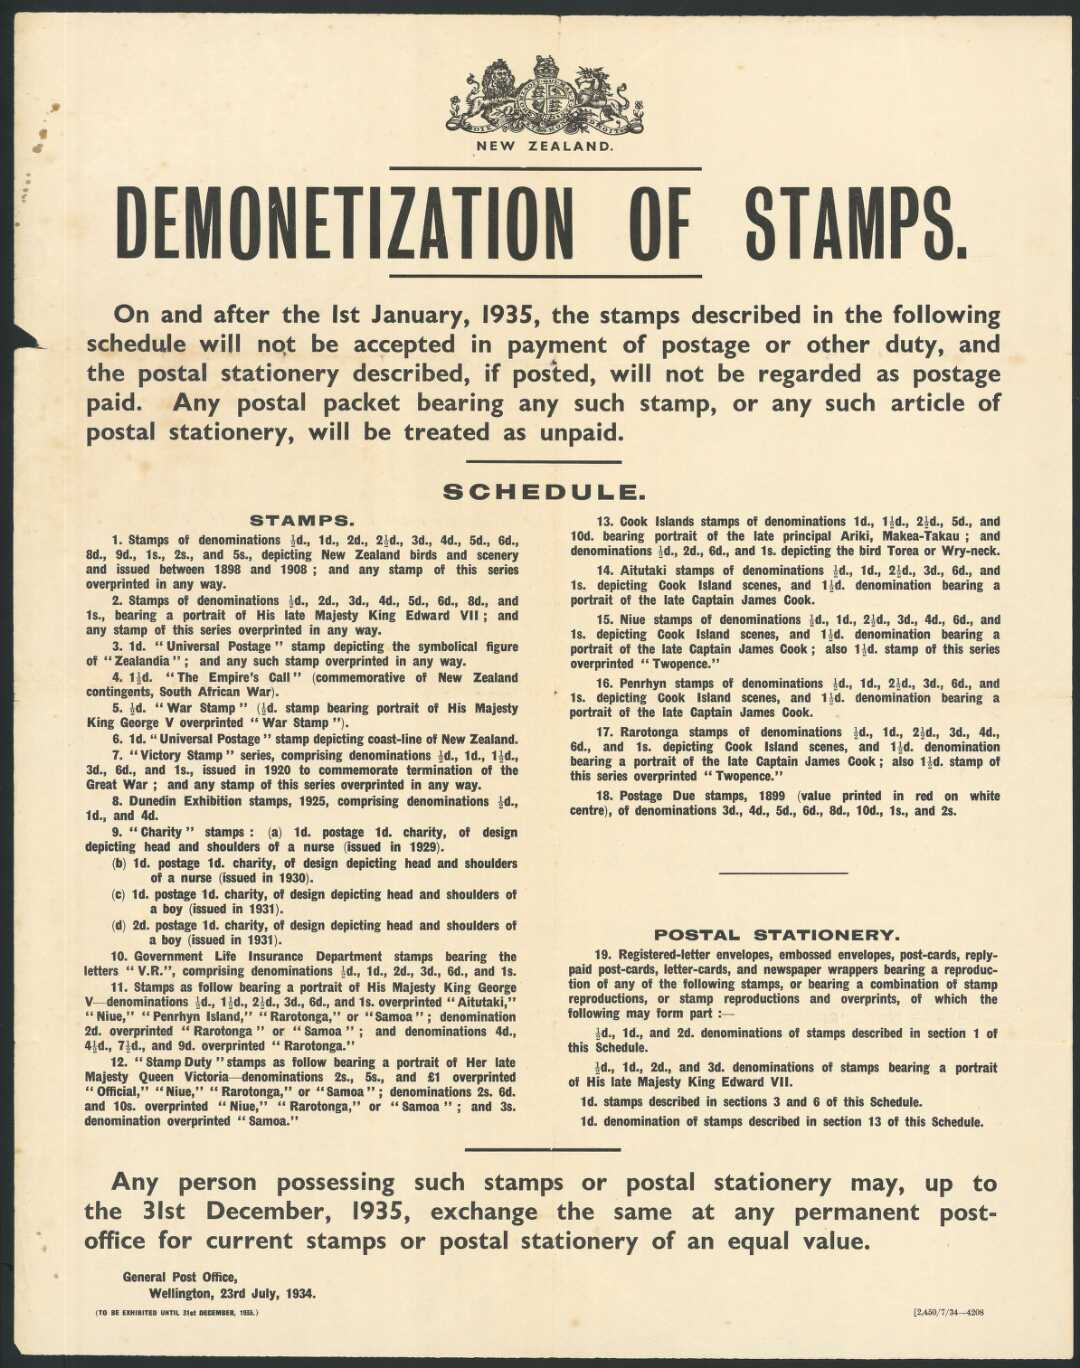 printed prepay christmas had canada the stamps rate denomination in two cent issued to post and on history denominations office matter same corner since postal cents date